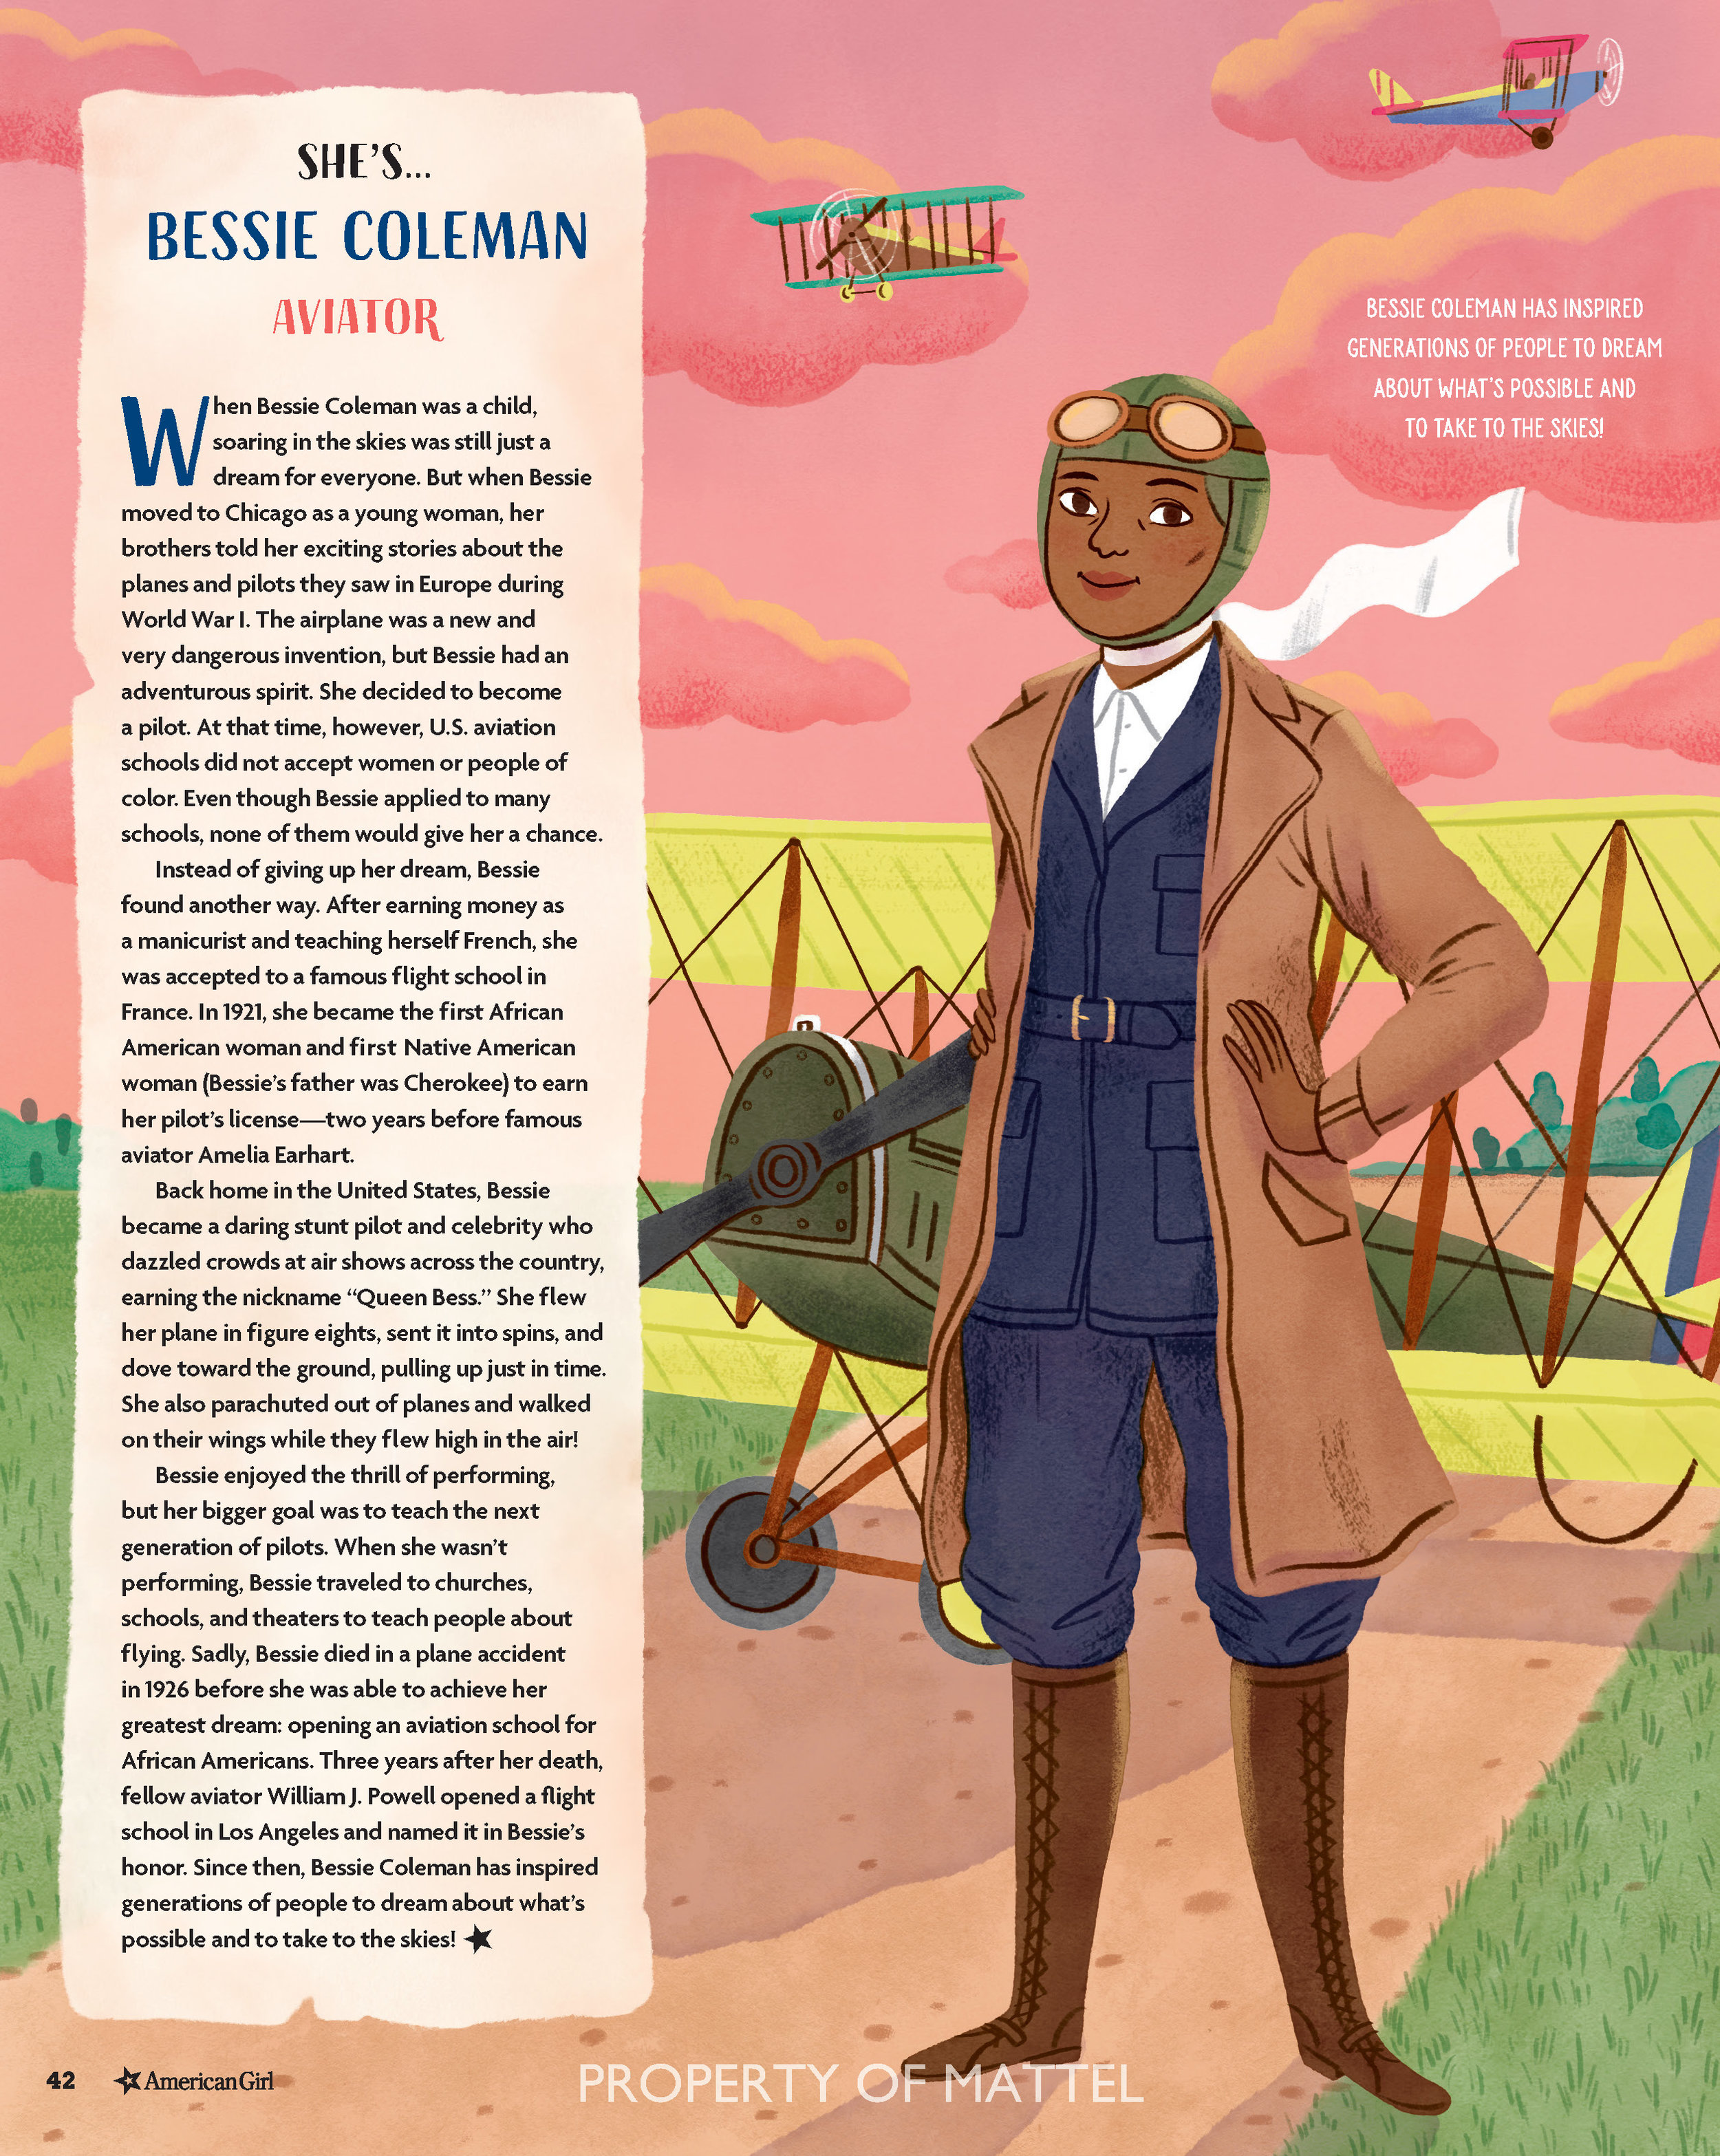 BessieColeman_squarespace_Page_2.jpg